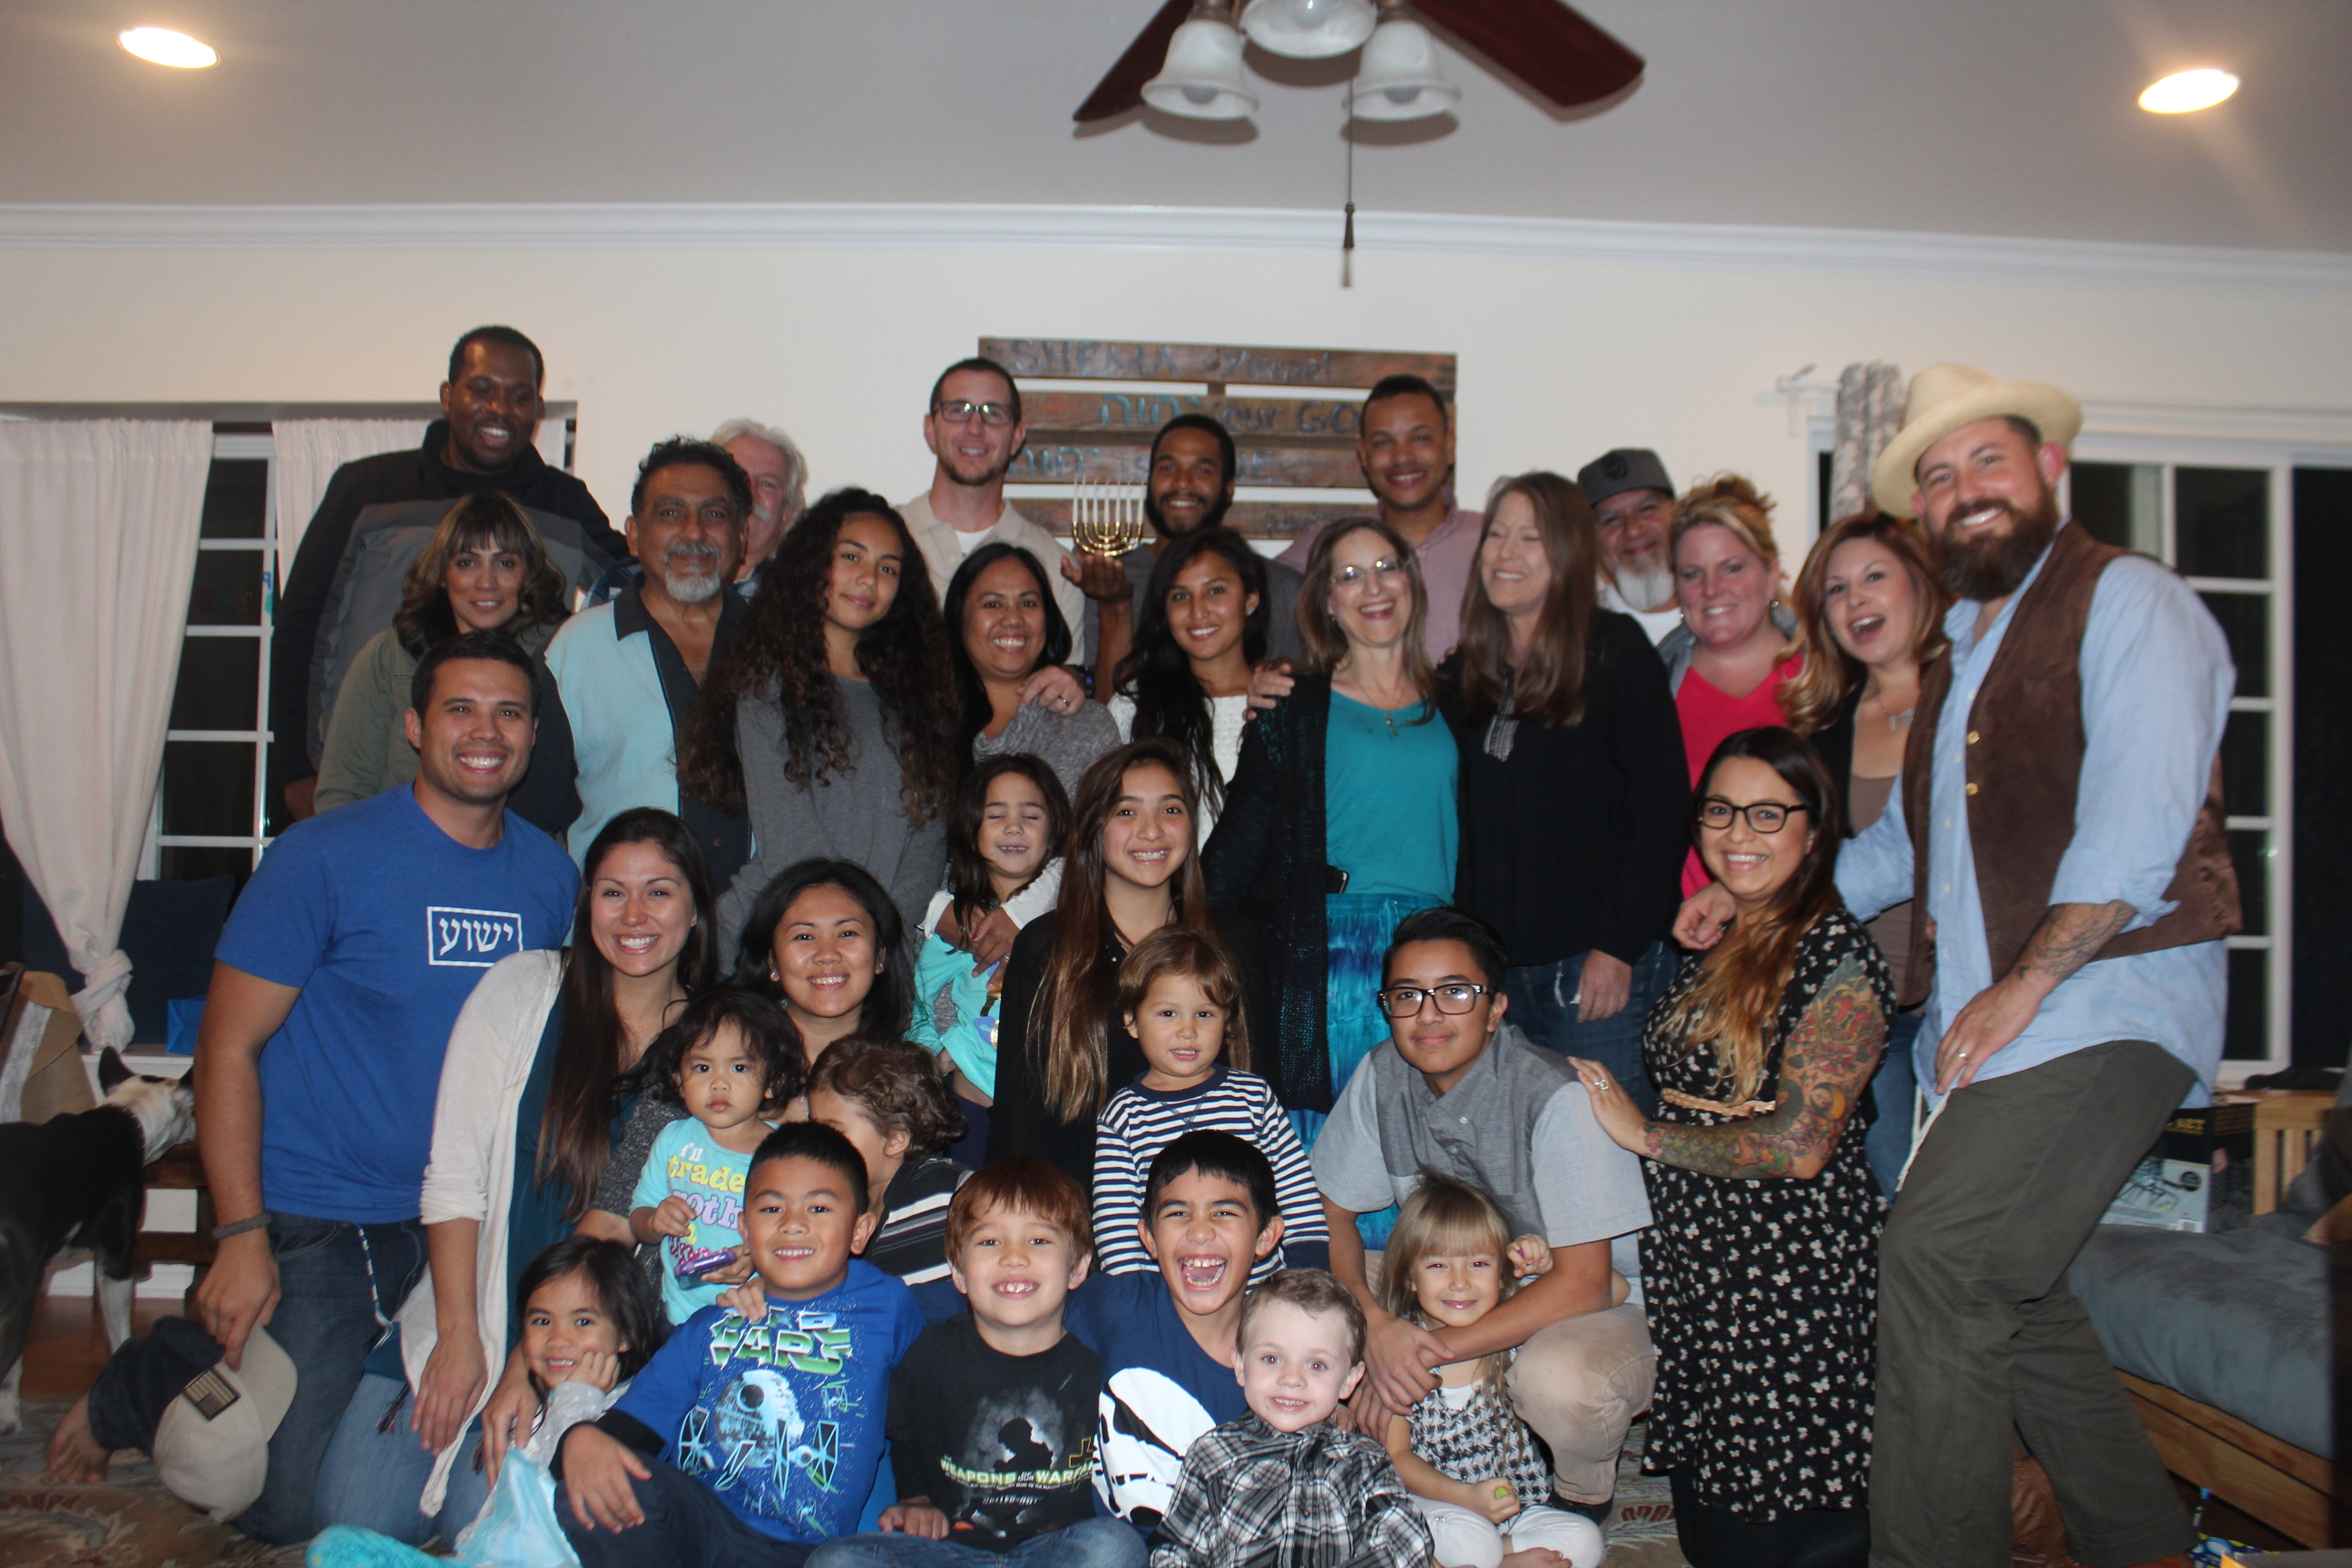 San Diego Home Fellowship